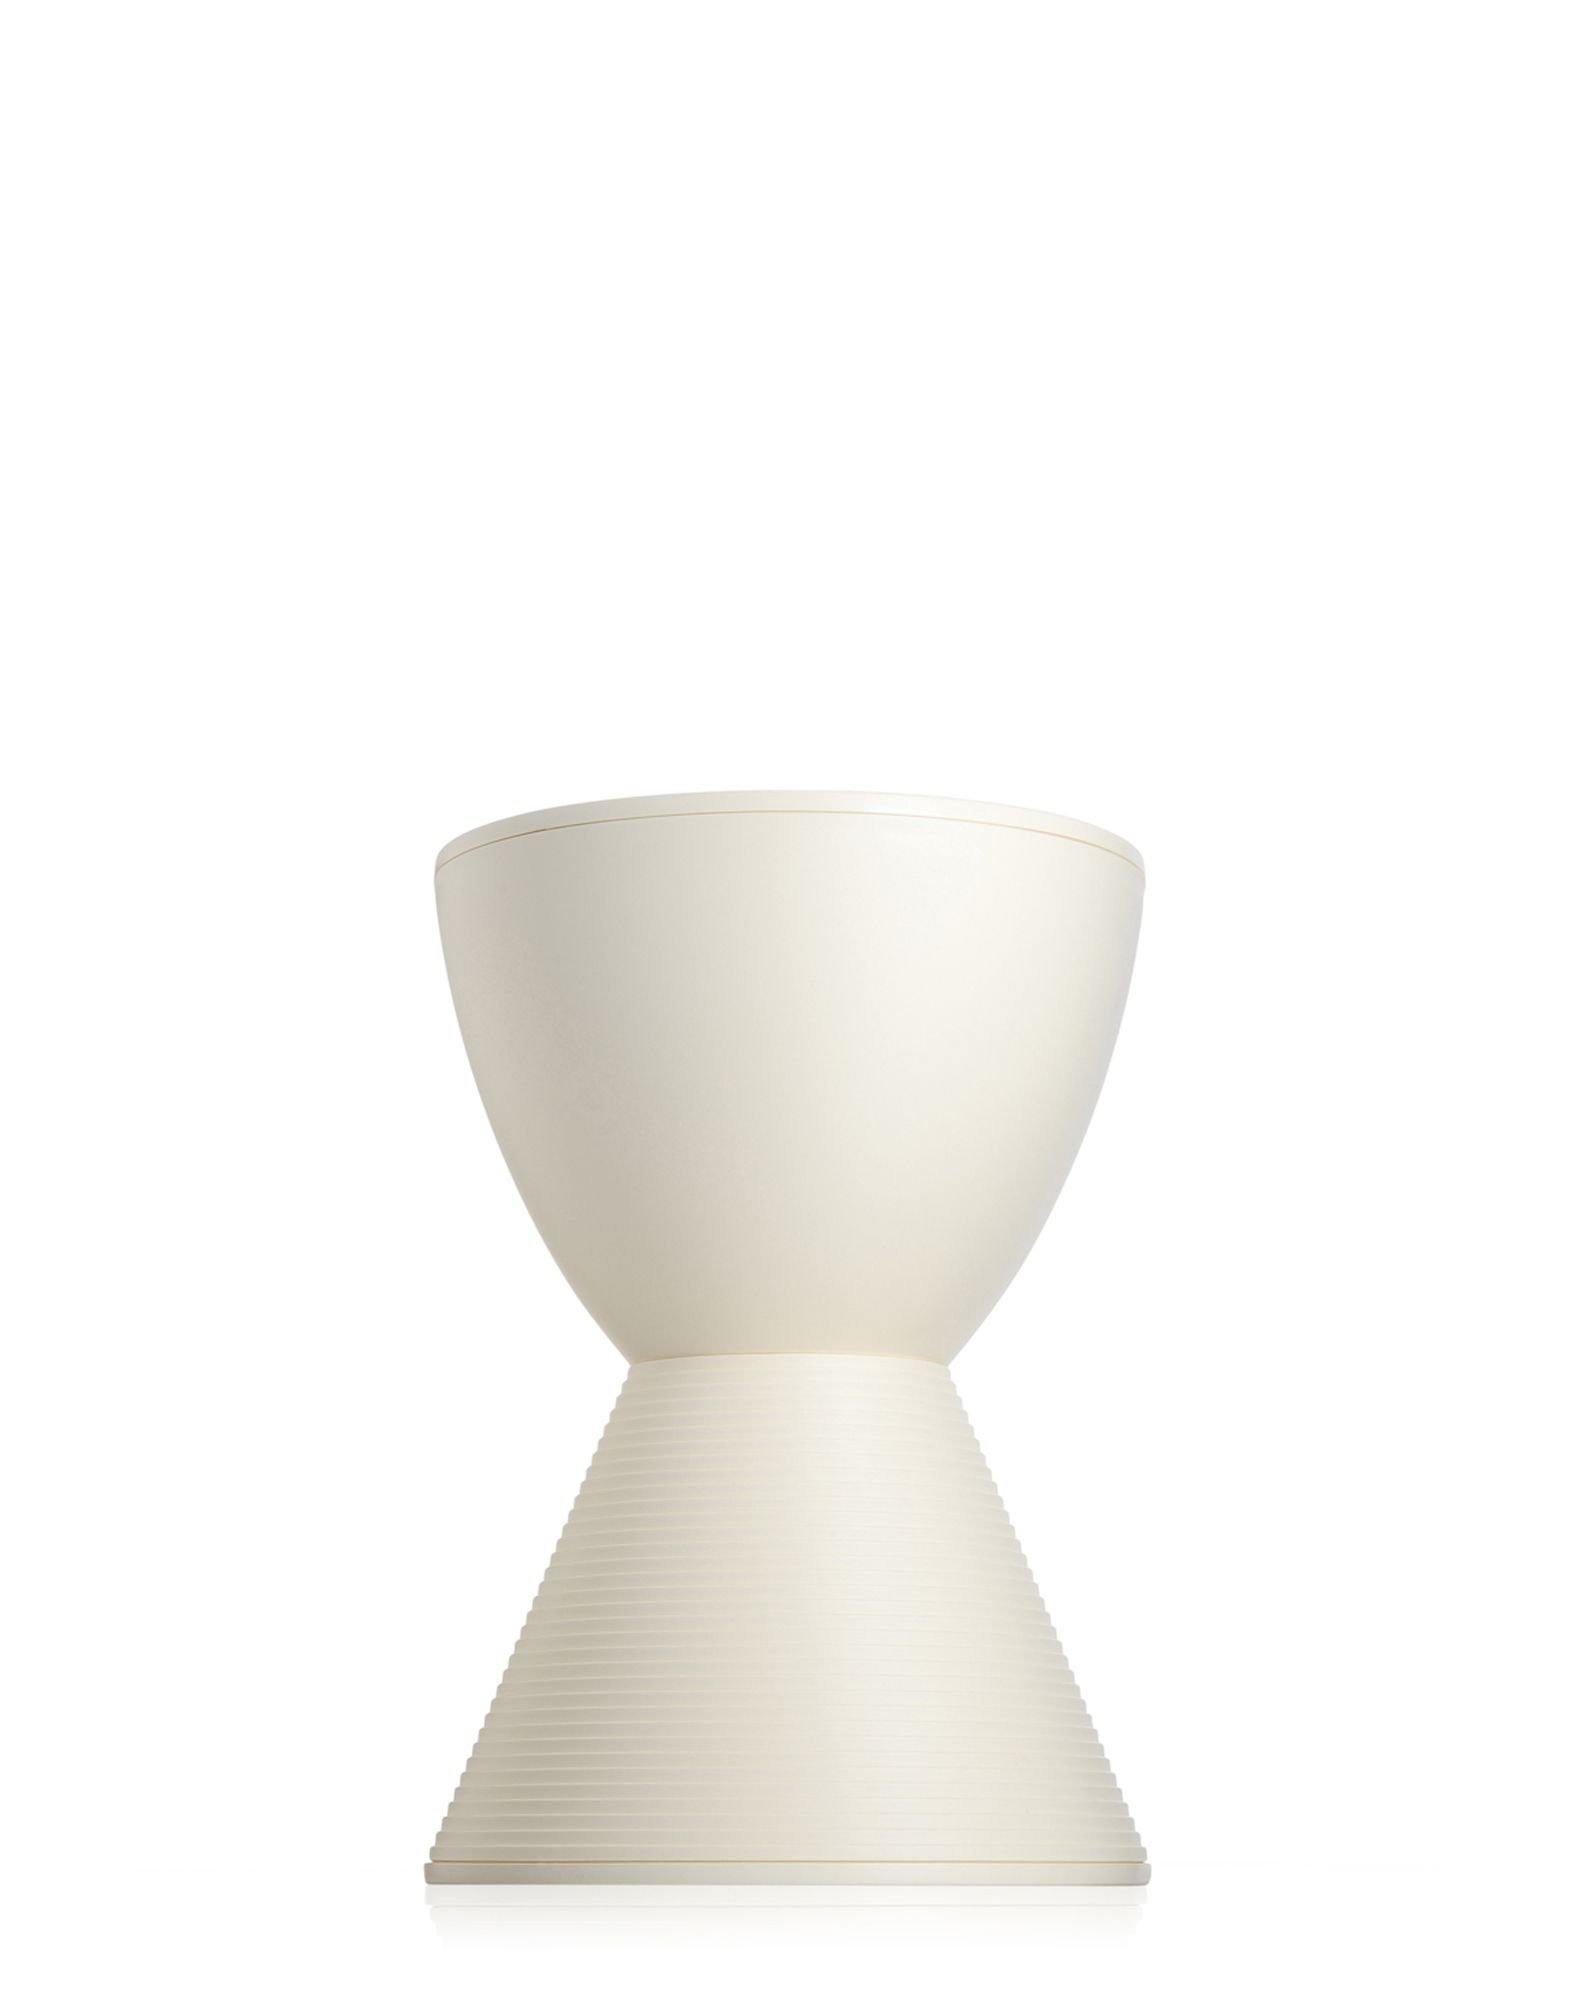 Prince Aha Stool from Kartell, designed by Philippe Starck